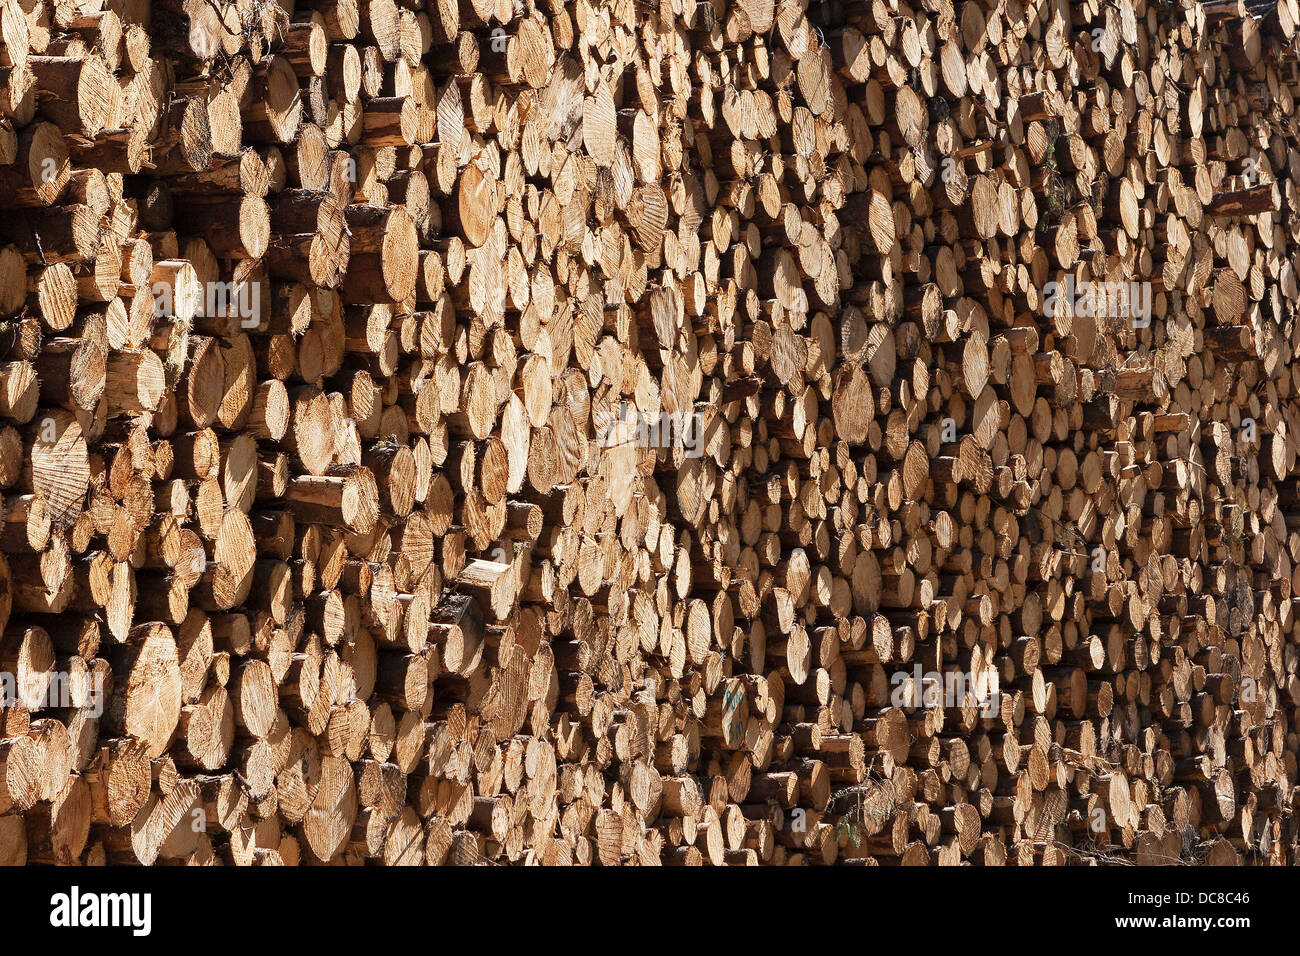 Close view of ends of stacked timber logs of pine wood in forest awaiting transport for commercial use.  Scotland, - Stock Image